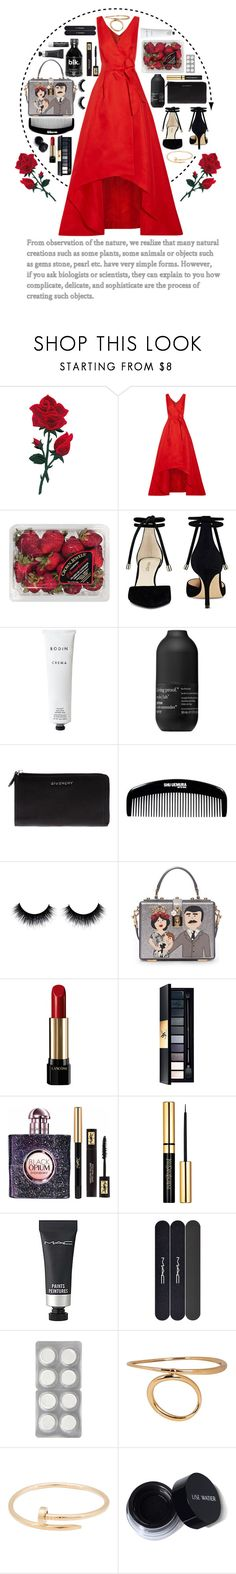 """""""strawberries"""" by valoverhere ❤ liked on Polyvore featuring Oscar de la Renta, FRUIT, Nine West, Rodin Olio Lusso, Living Proof, Givenchy, shu uemura, Dolce&Gabbana, Lancôme and Yves Saint Laurent"""